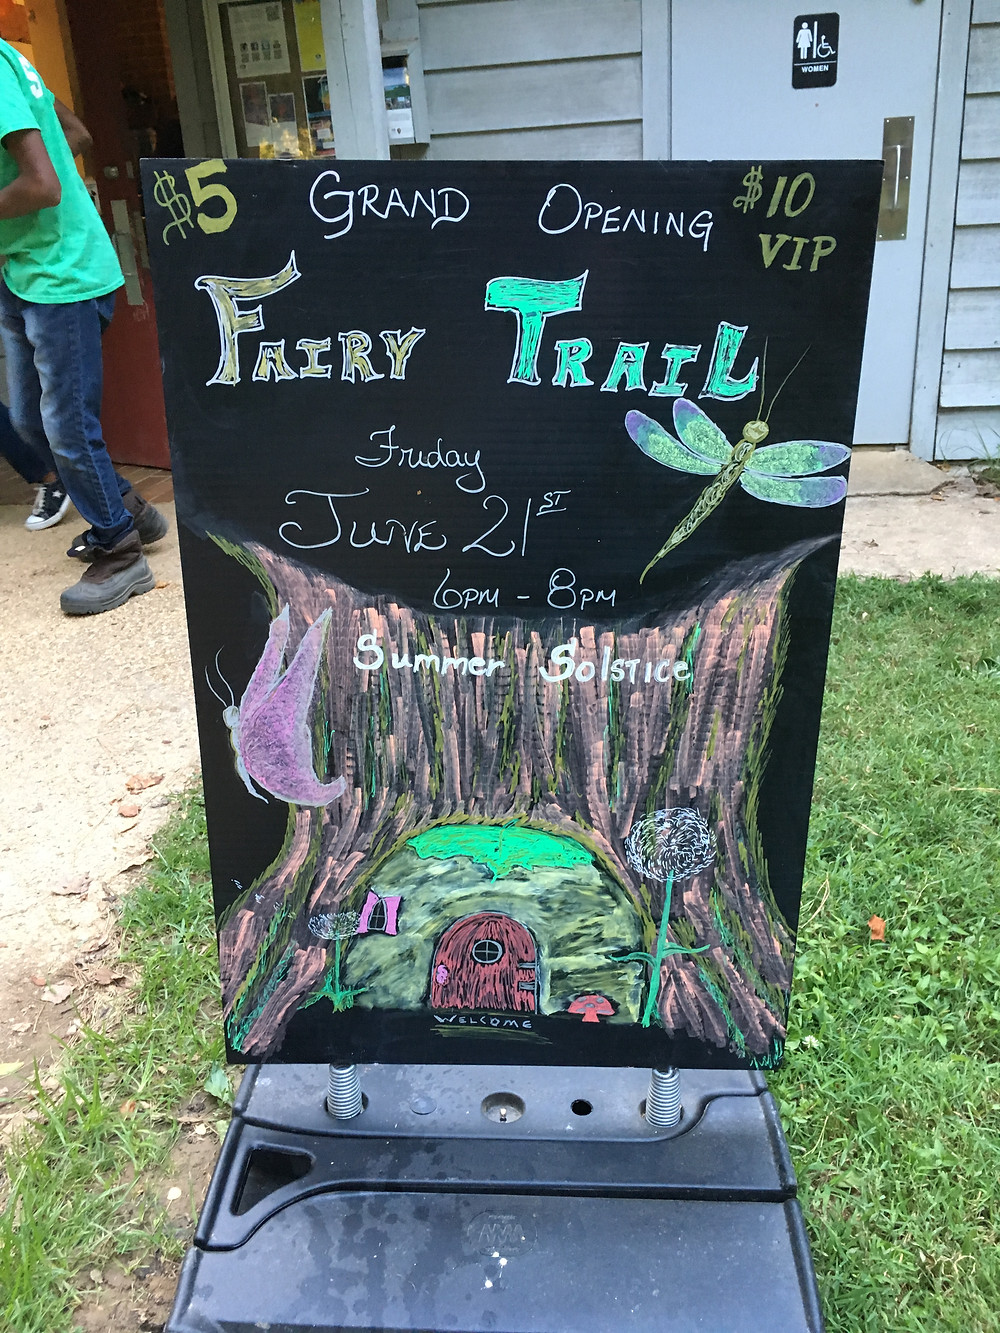 The sign for the fairy trail grand opening event